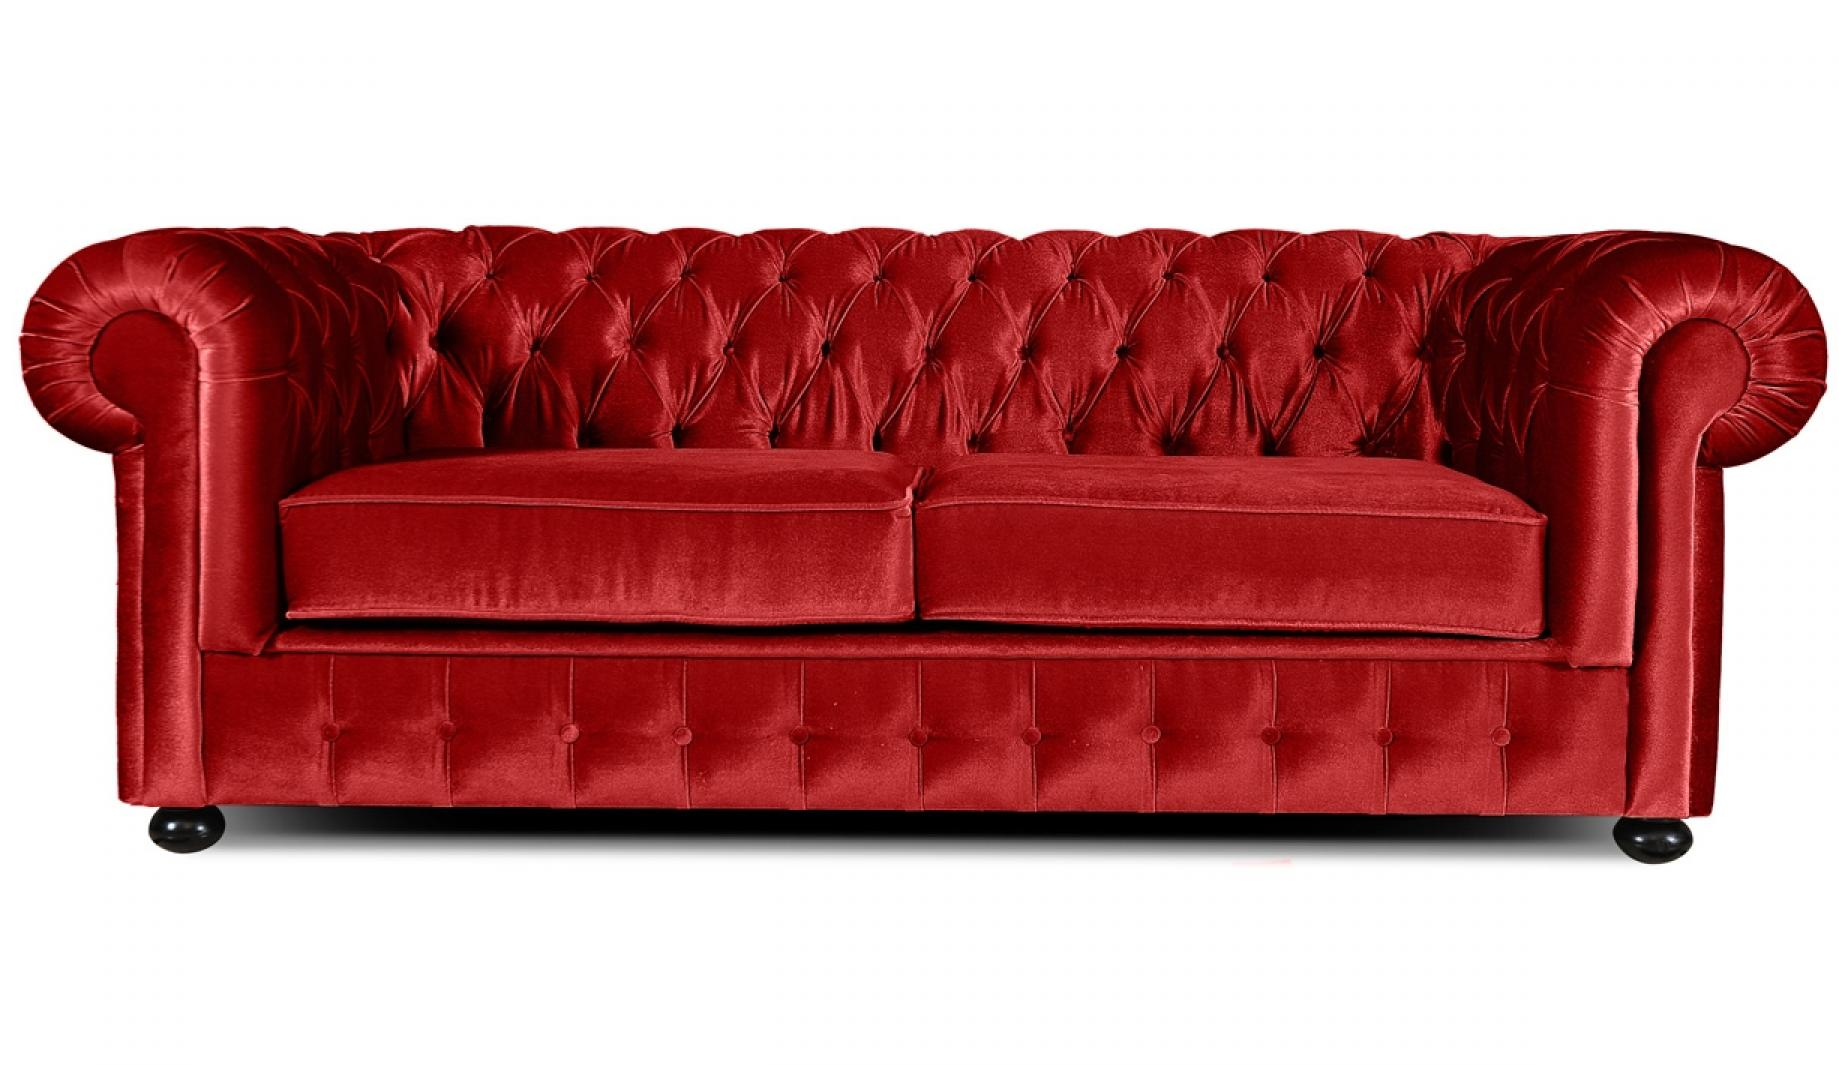 Canape chesterfield velours - Comment nettoyer un divan en cuir ...